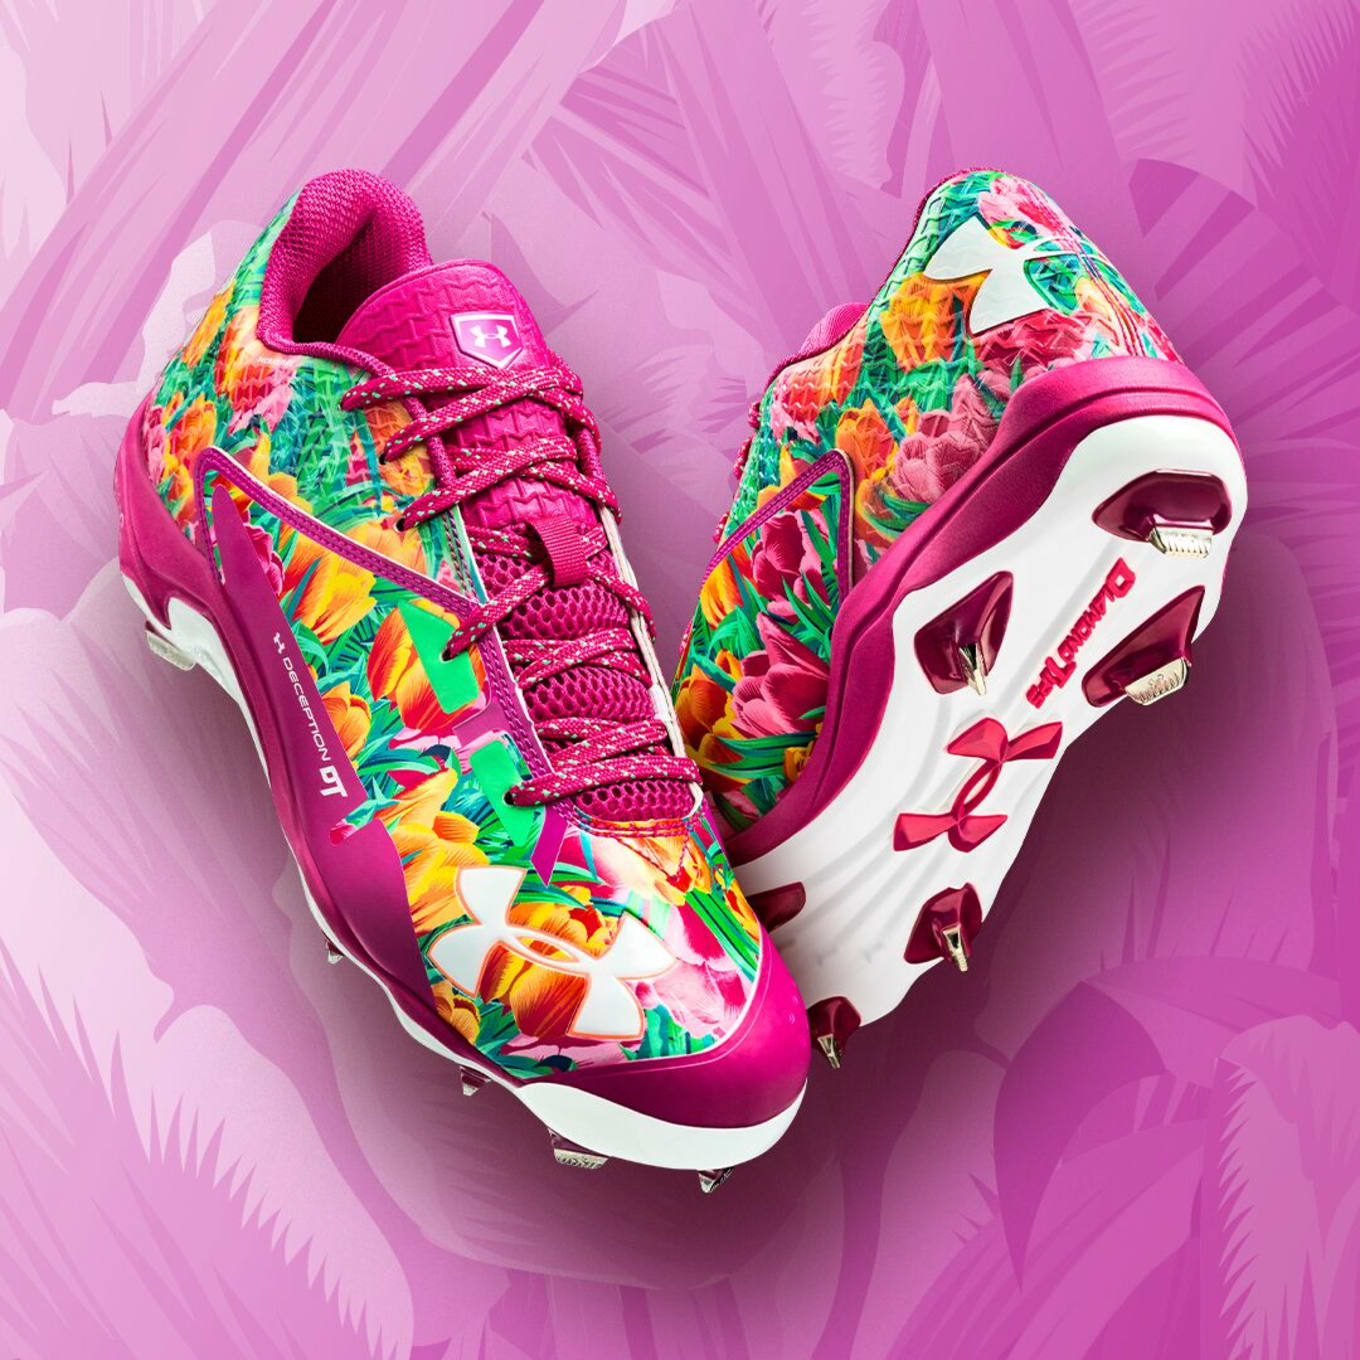 b2b6be1d45f4 Under Armour Deception DT Mother's Day Cleats | Sole Collector